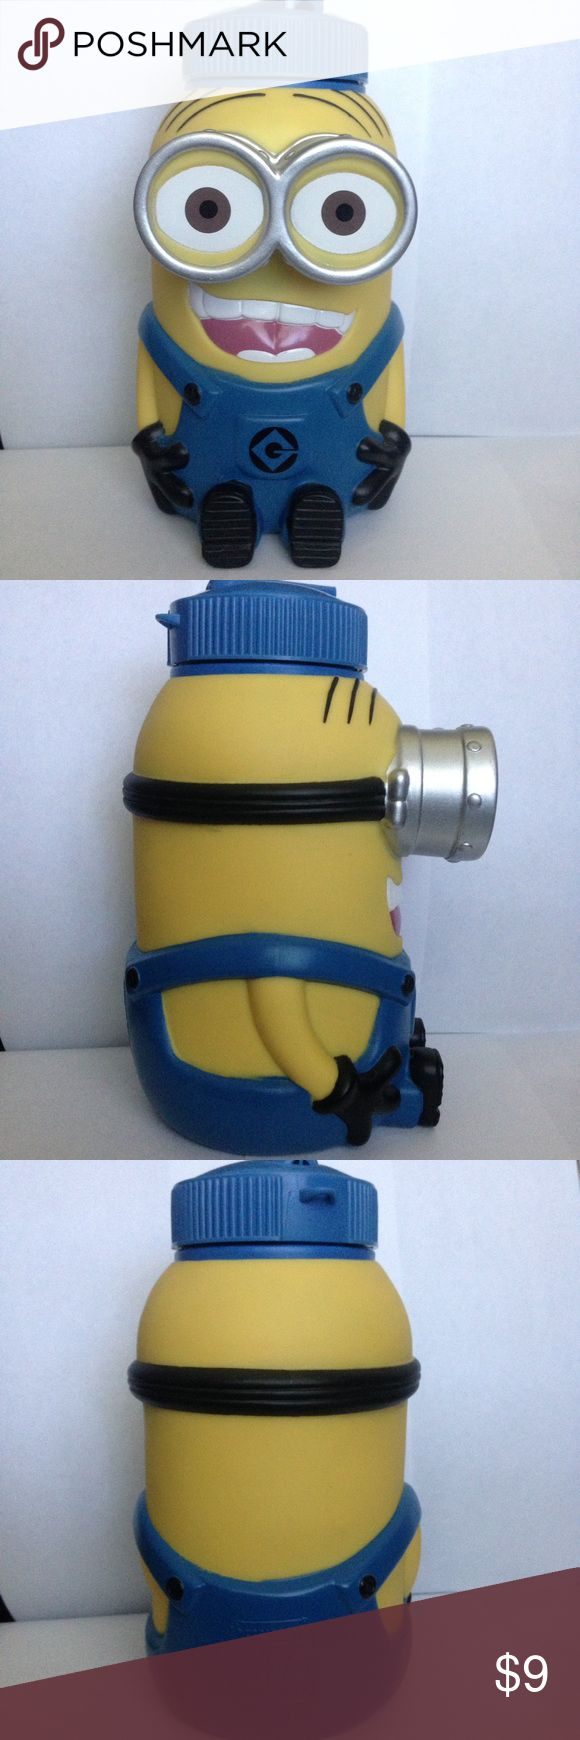 Minion Cup 8 1/2 inches tall, almost 10 inches when the straw is up. 4 1/2 inches wide from the back to the front, including the eyes. 4 inches wide from side to side (arm to arm). Bought at Universal Studios. Only used once on the day of purchase. No smell of use. Minion Other